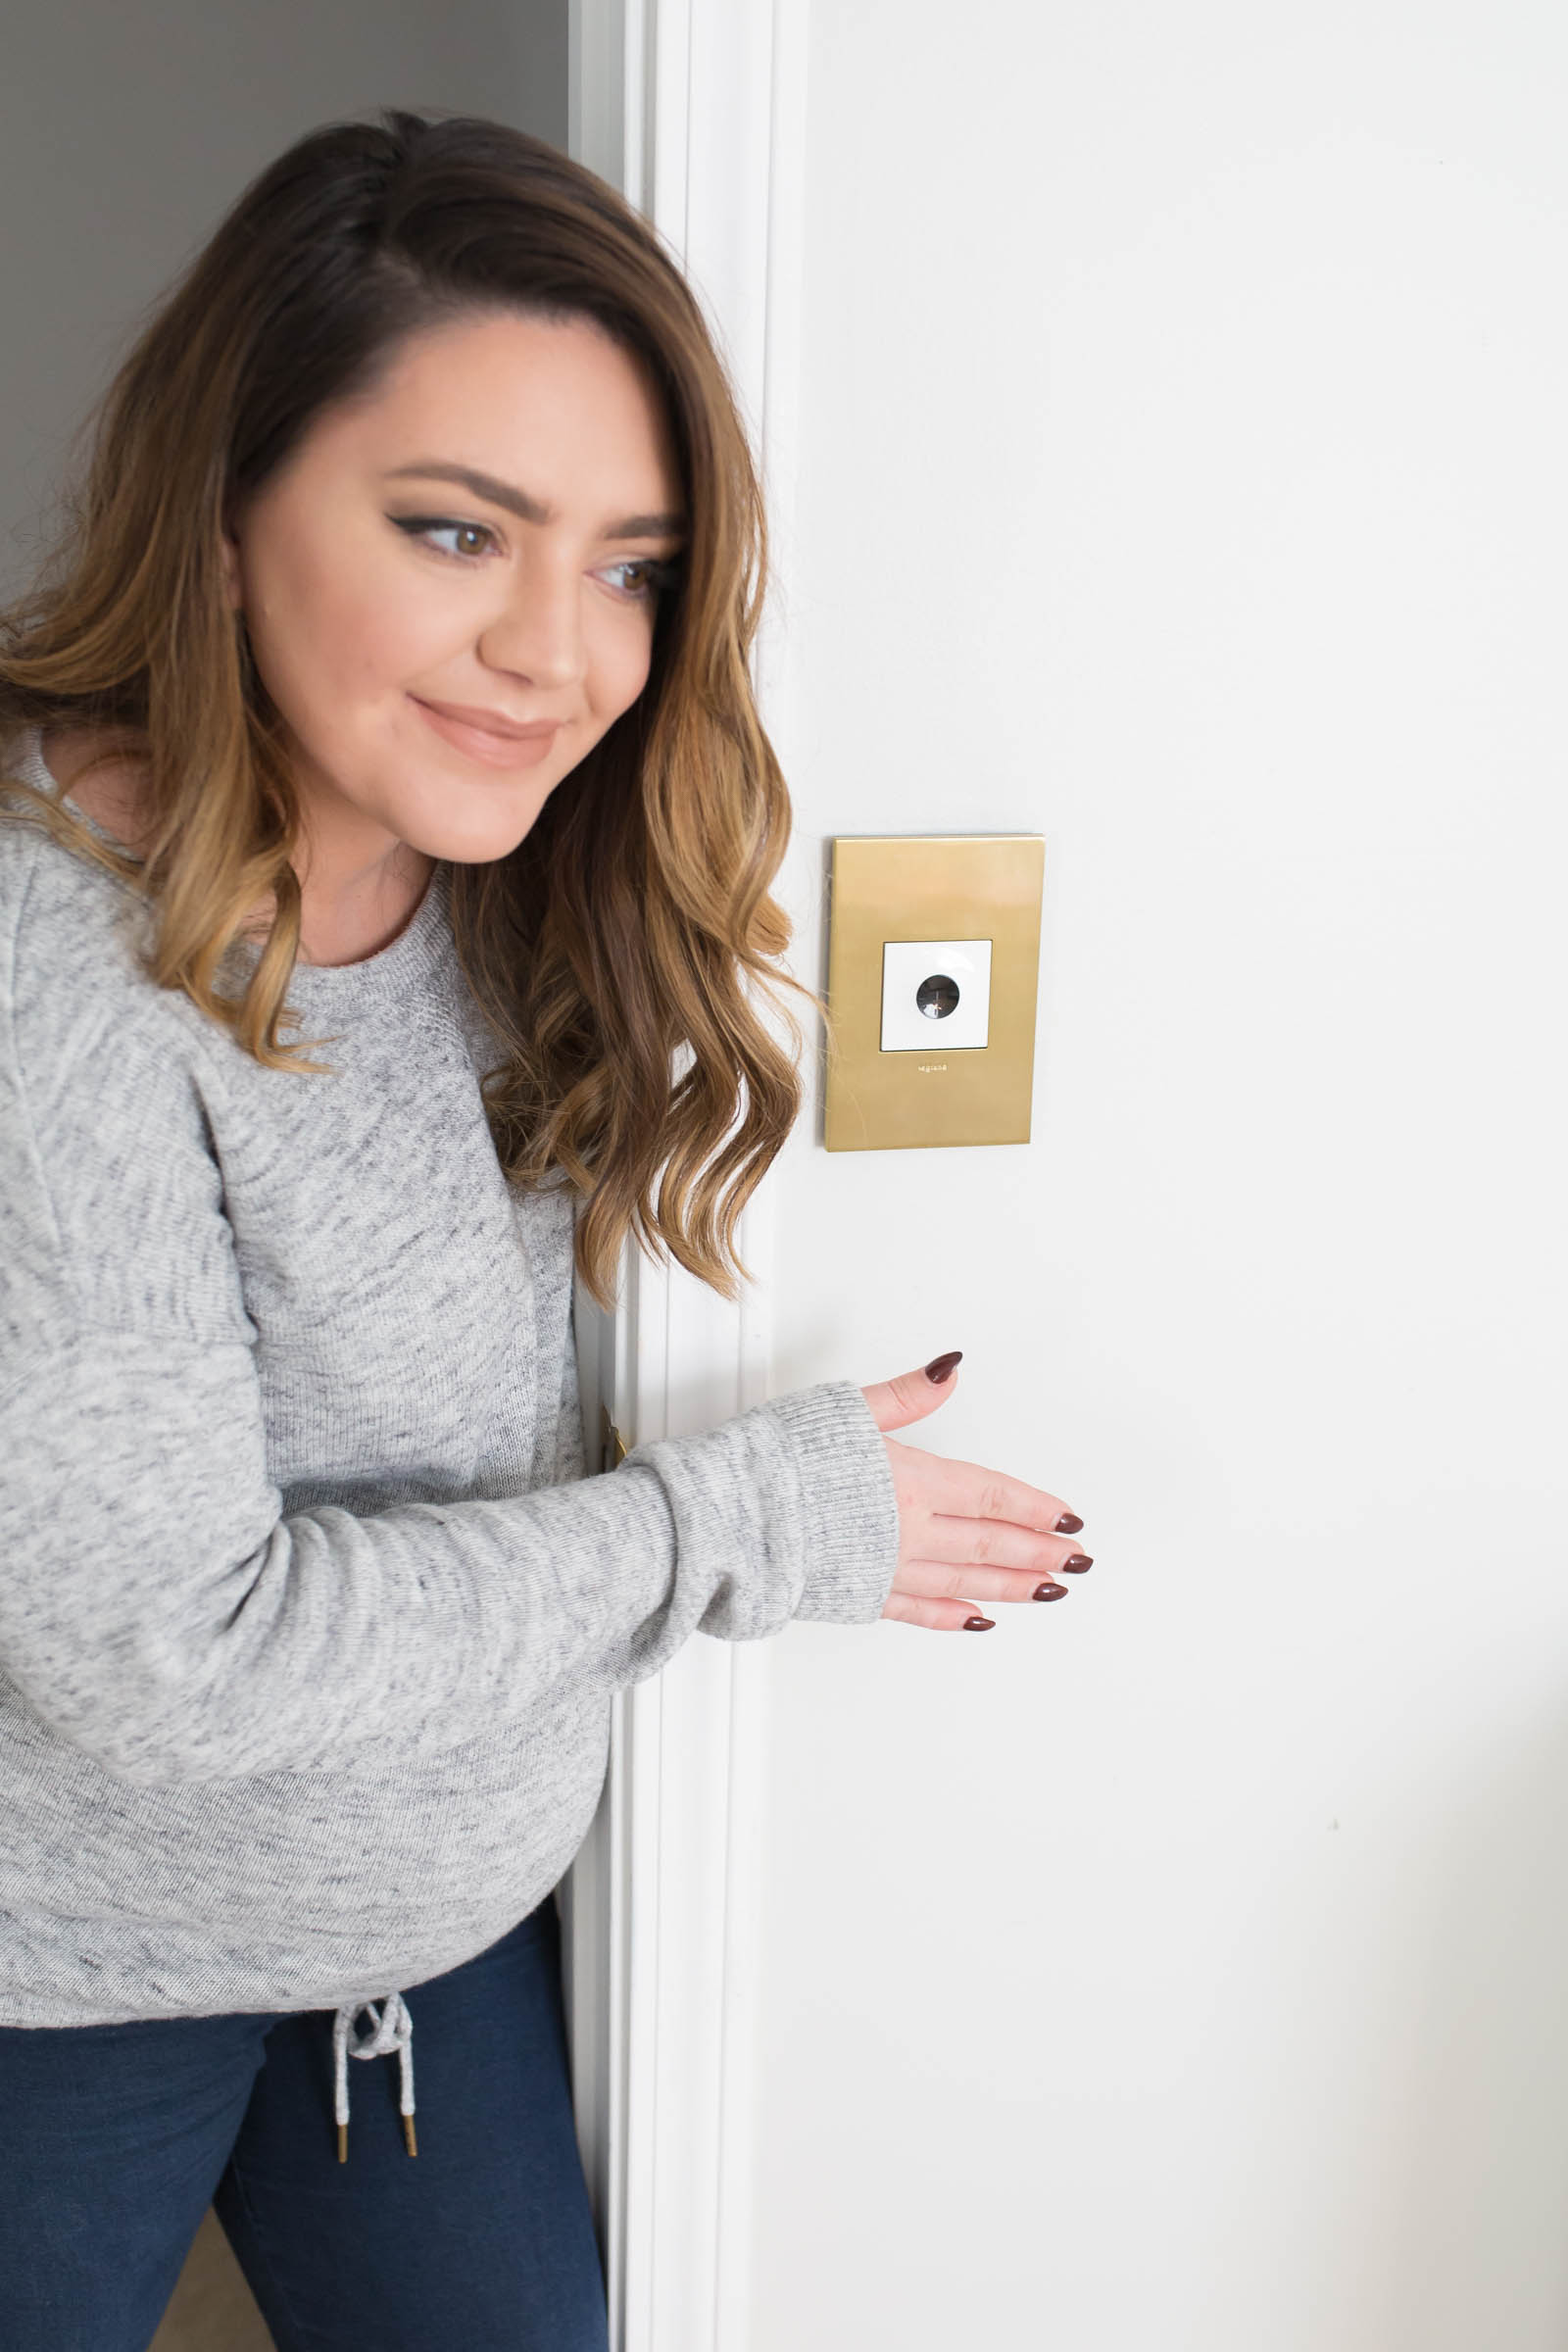 Nursery Finishing Touches with Legrand Adorne Collection | Brushed Brass Wall Plate | Wi-FI Outlet | USB Outlet | Innovative Lighting Controls & Charging Solutions | via @maeamor